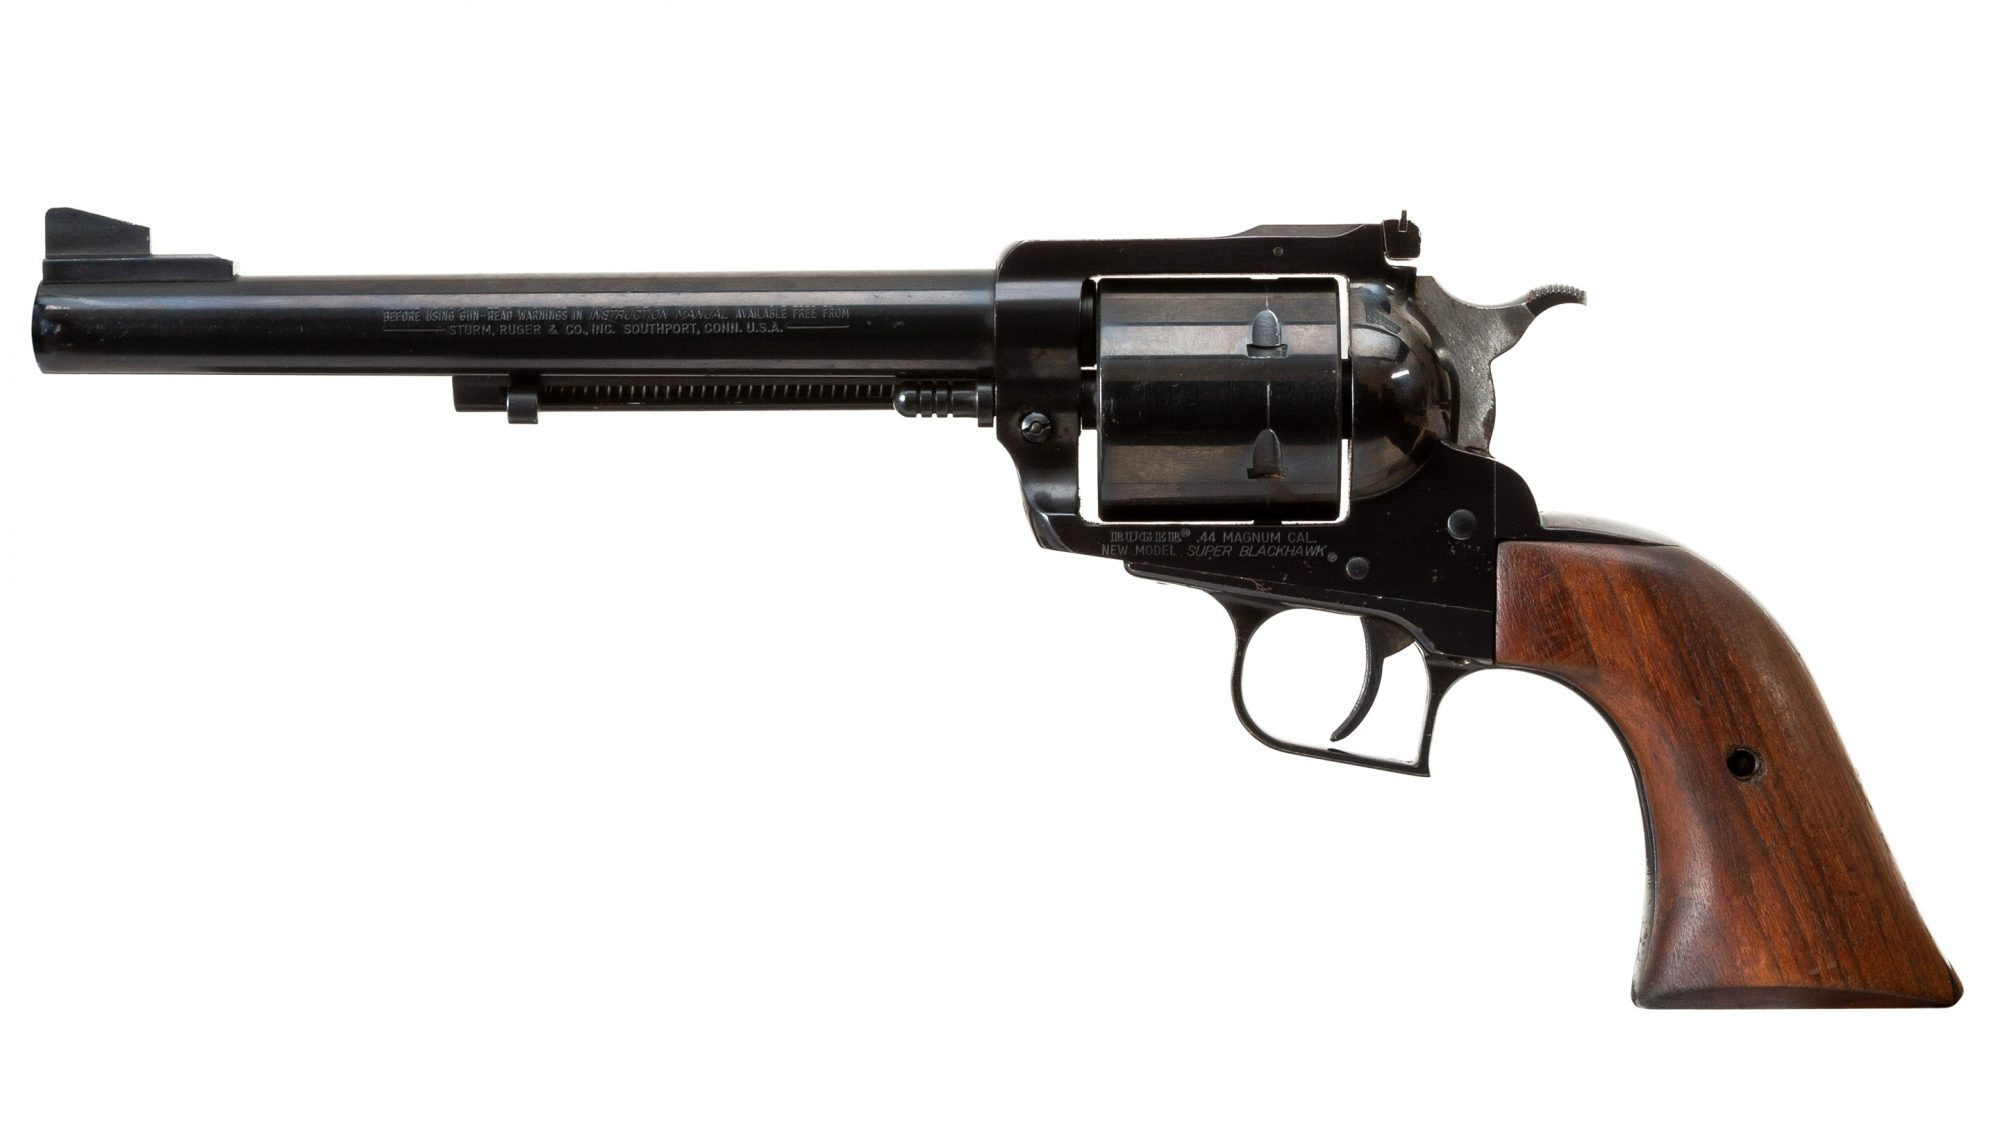 Photo of a pre-owned Ruger New Model Super Blackhawk, for sale as-is by Turnbull Restoration of Bloomfield, NY